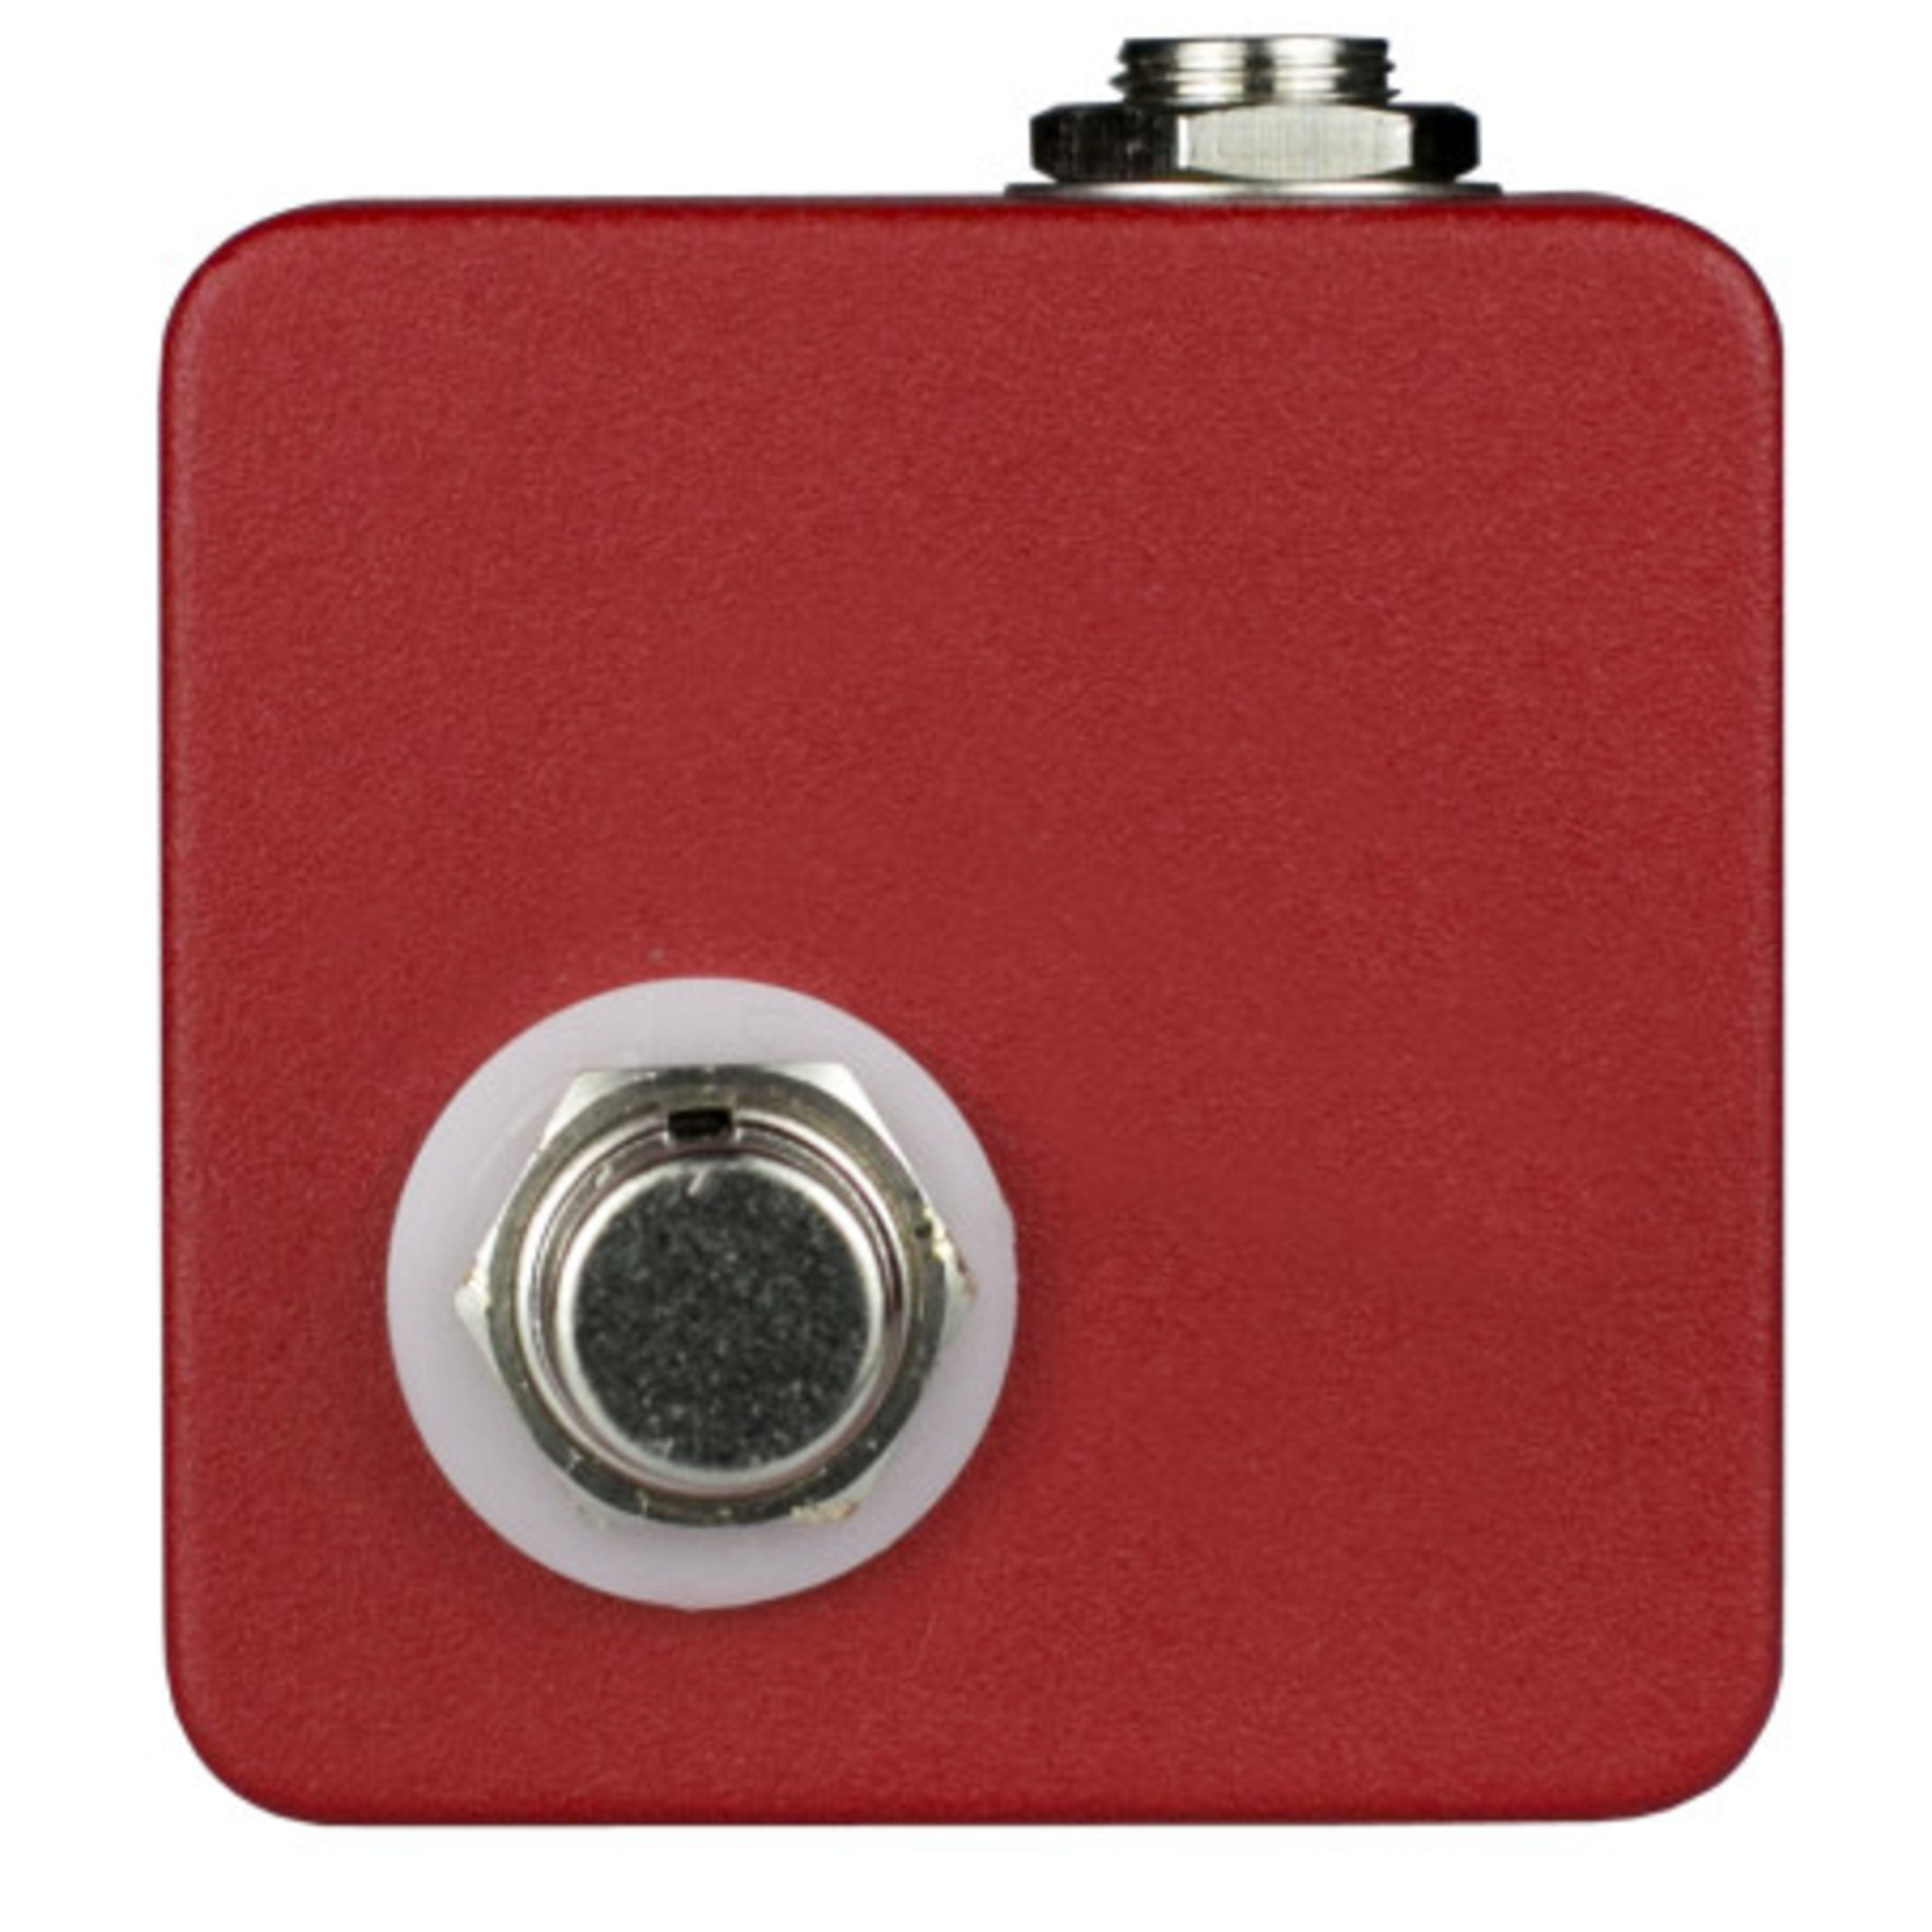 JHS Pedals - Red Remote JHS RED REMOTE